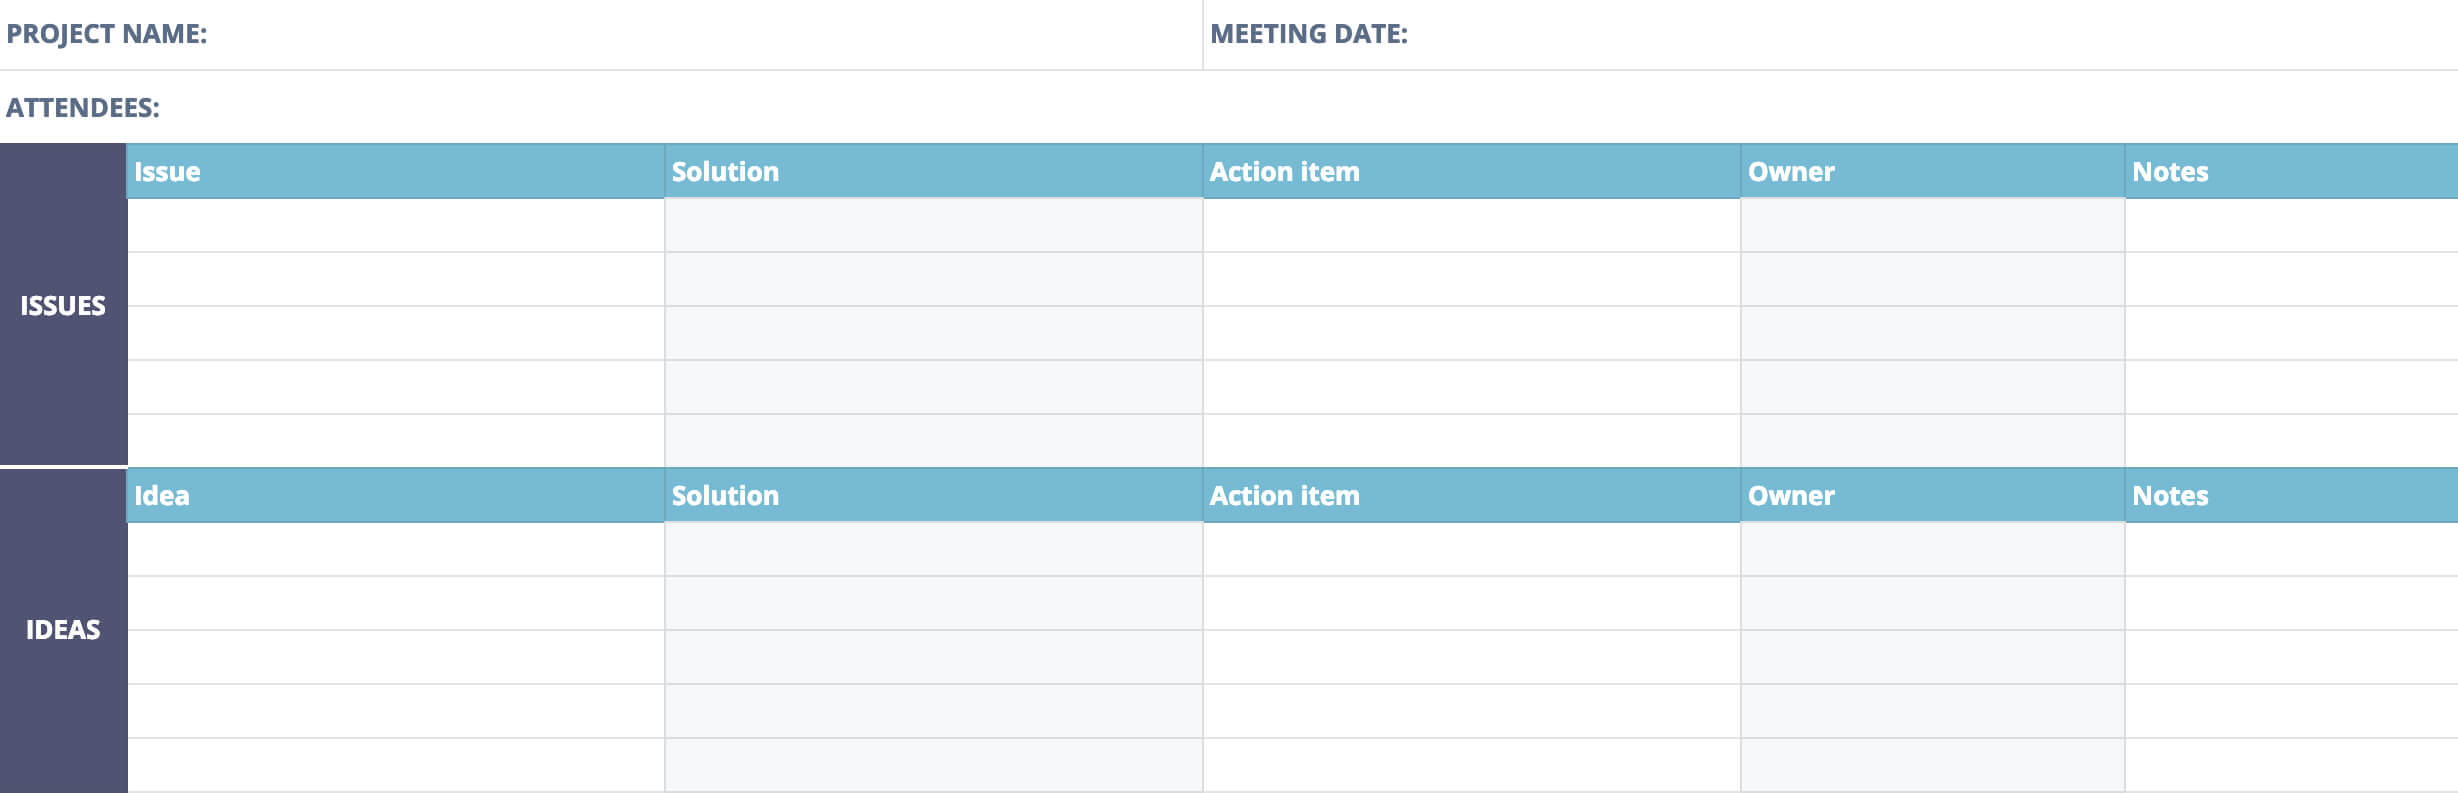 Post Mortem Meeting Template And Tips | Teamgantt Within Post Project Report Template